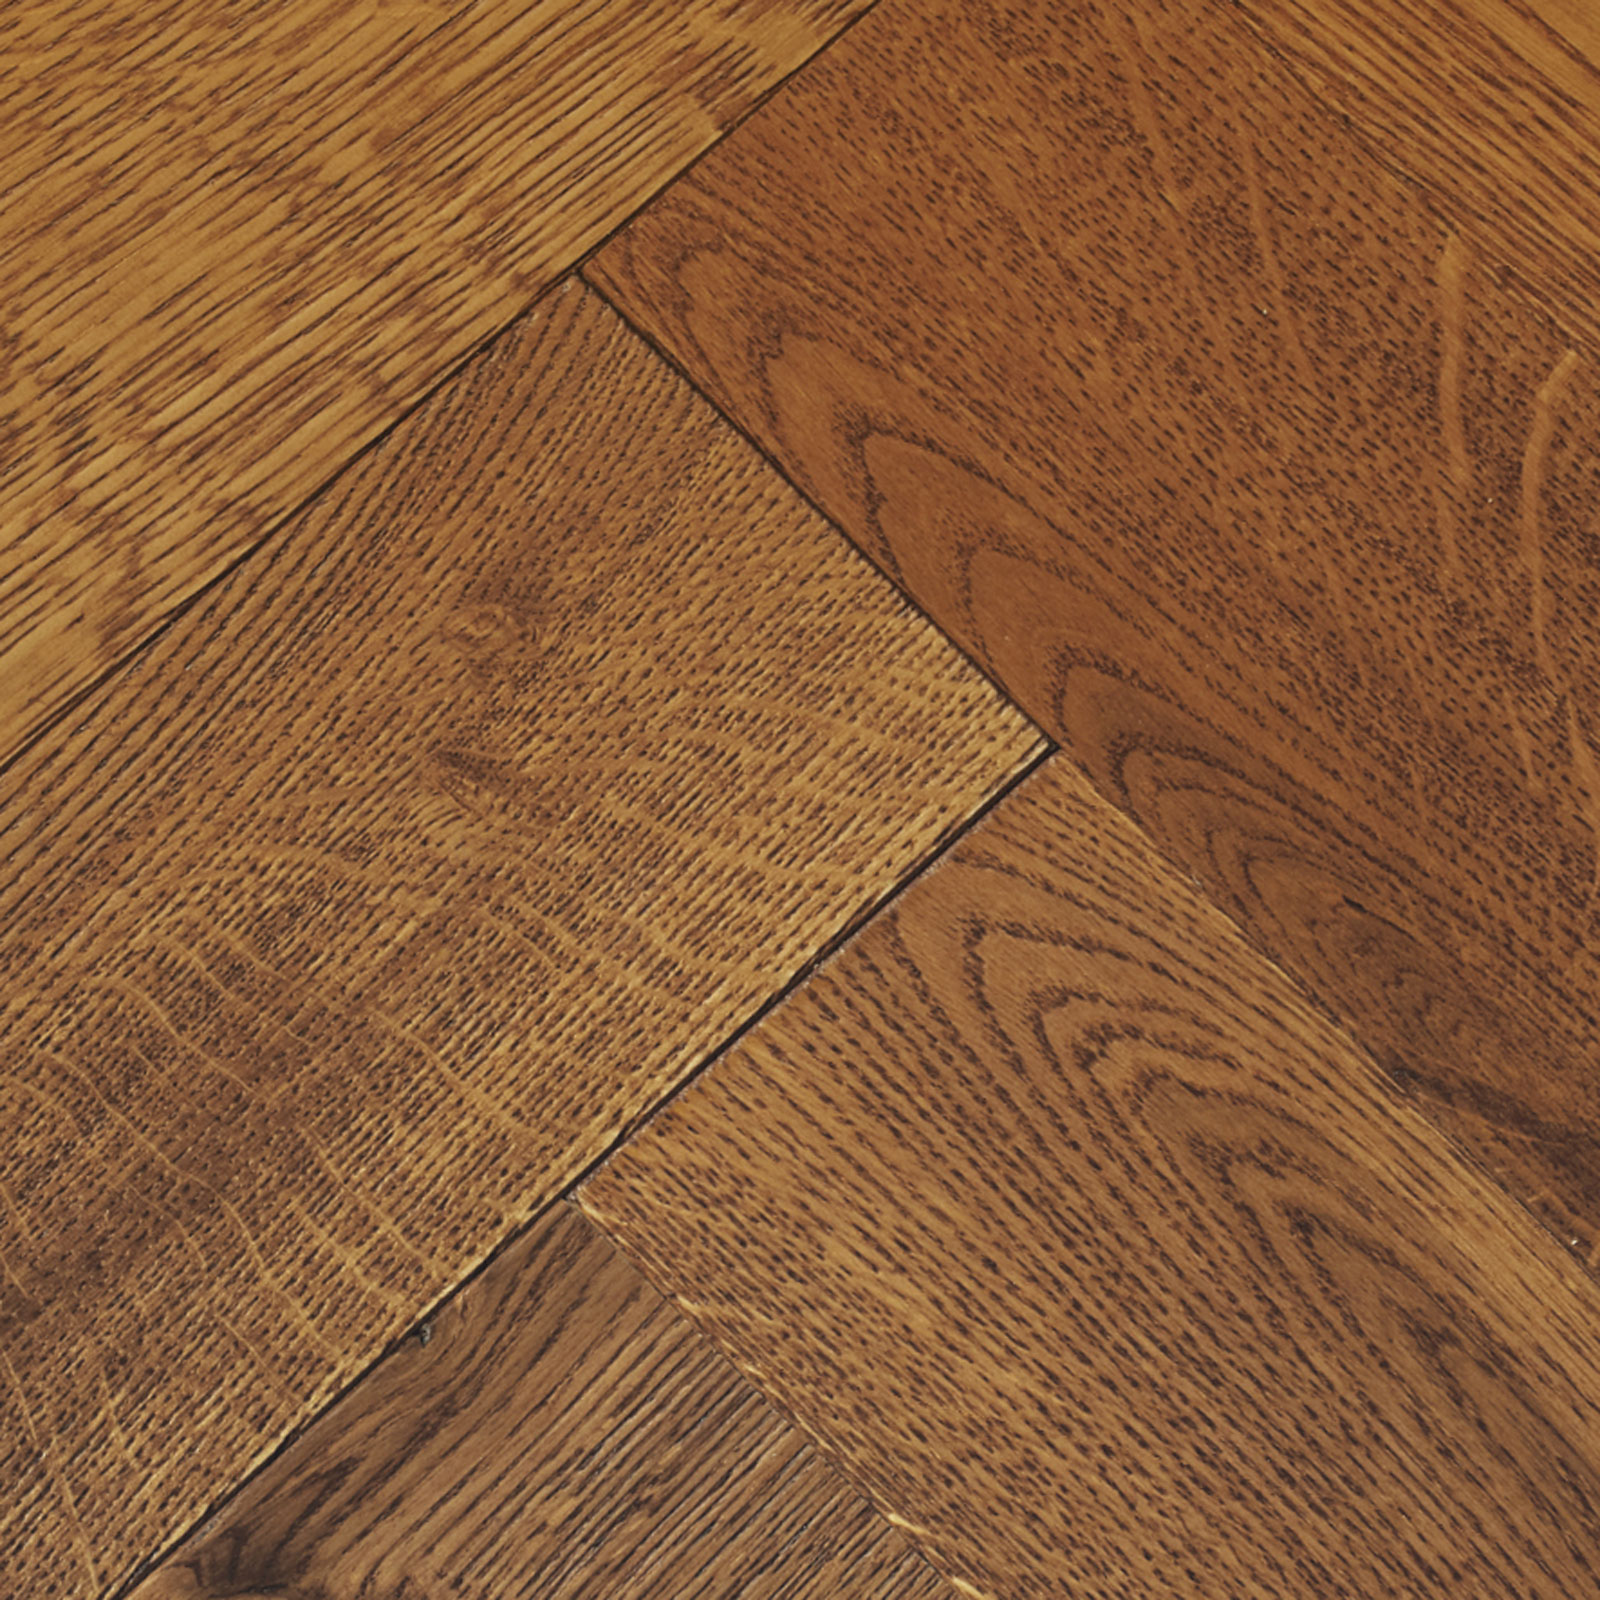 Parquet flooring also parquet wood flooring also engineered oak flooring also timber flooring